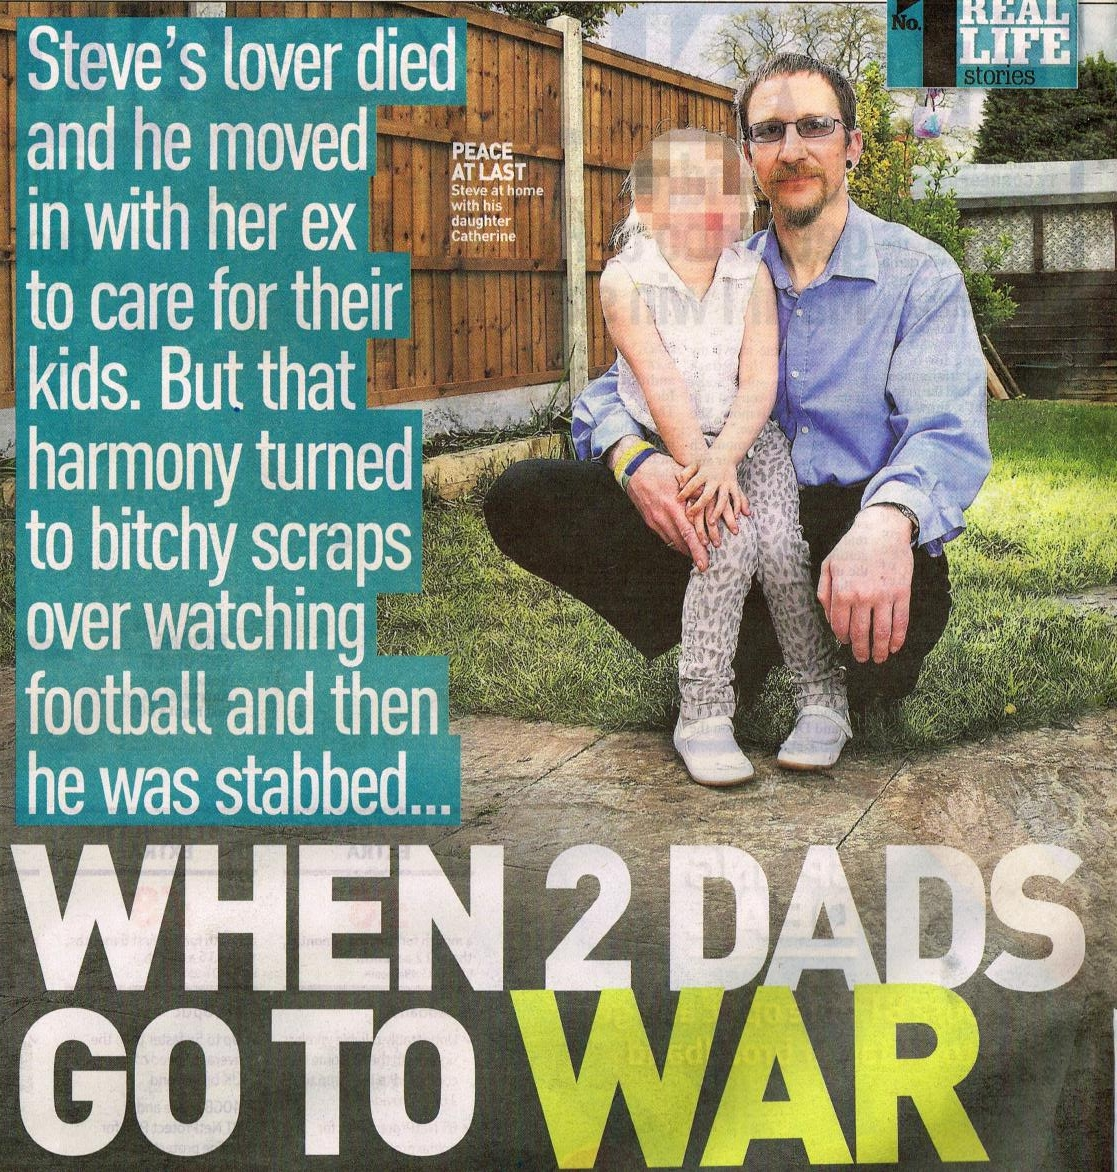 sell story to sunday people